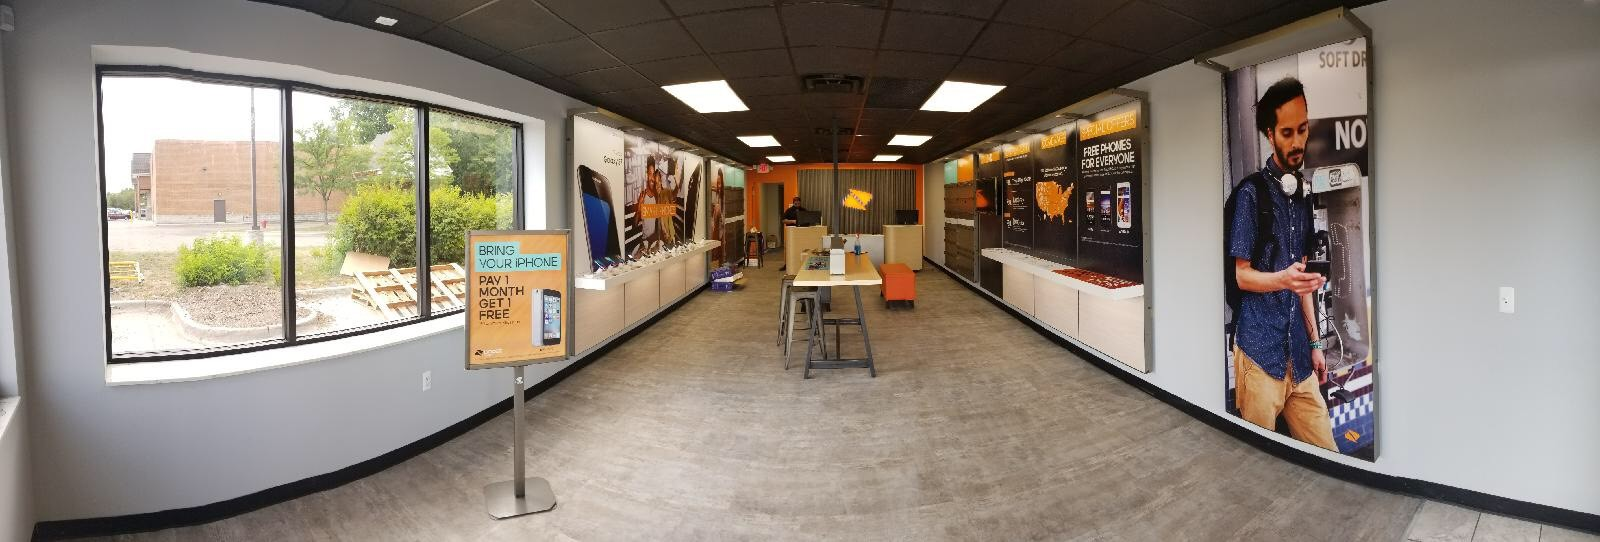 A large part in Boost Mobile's revamping included remodeling their stores.